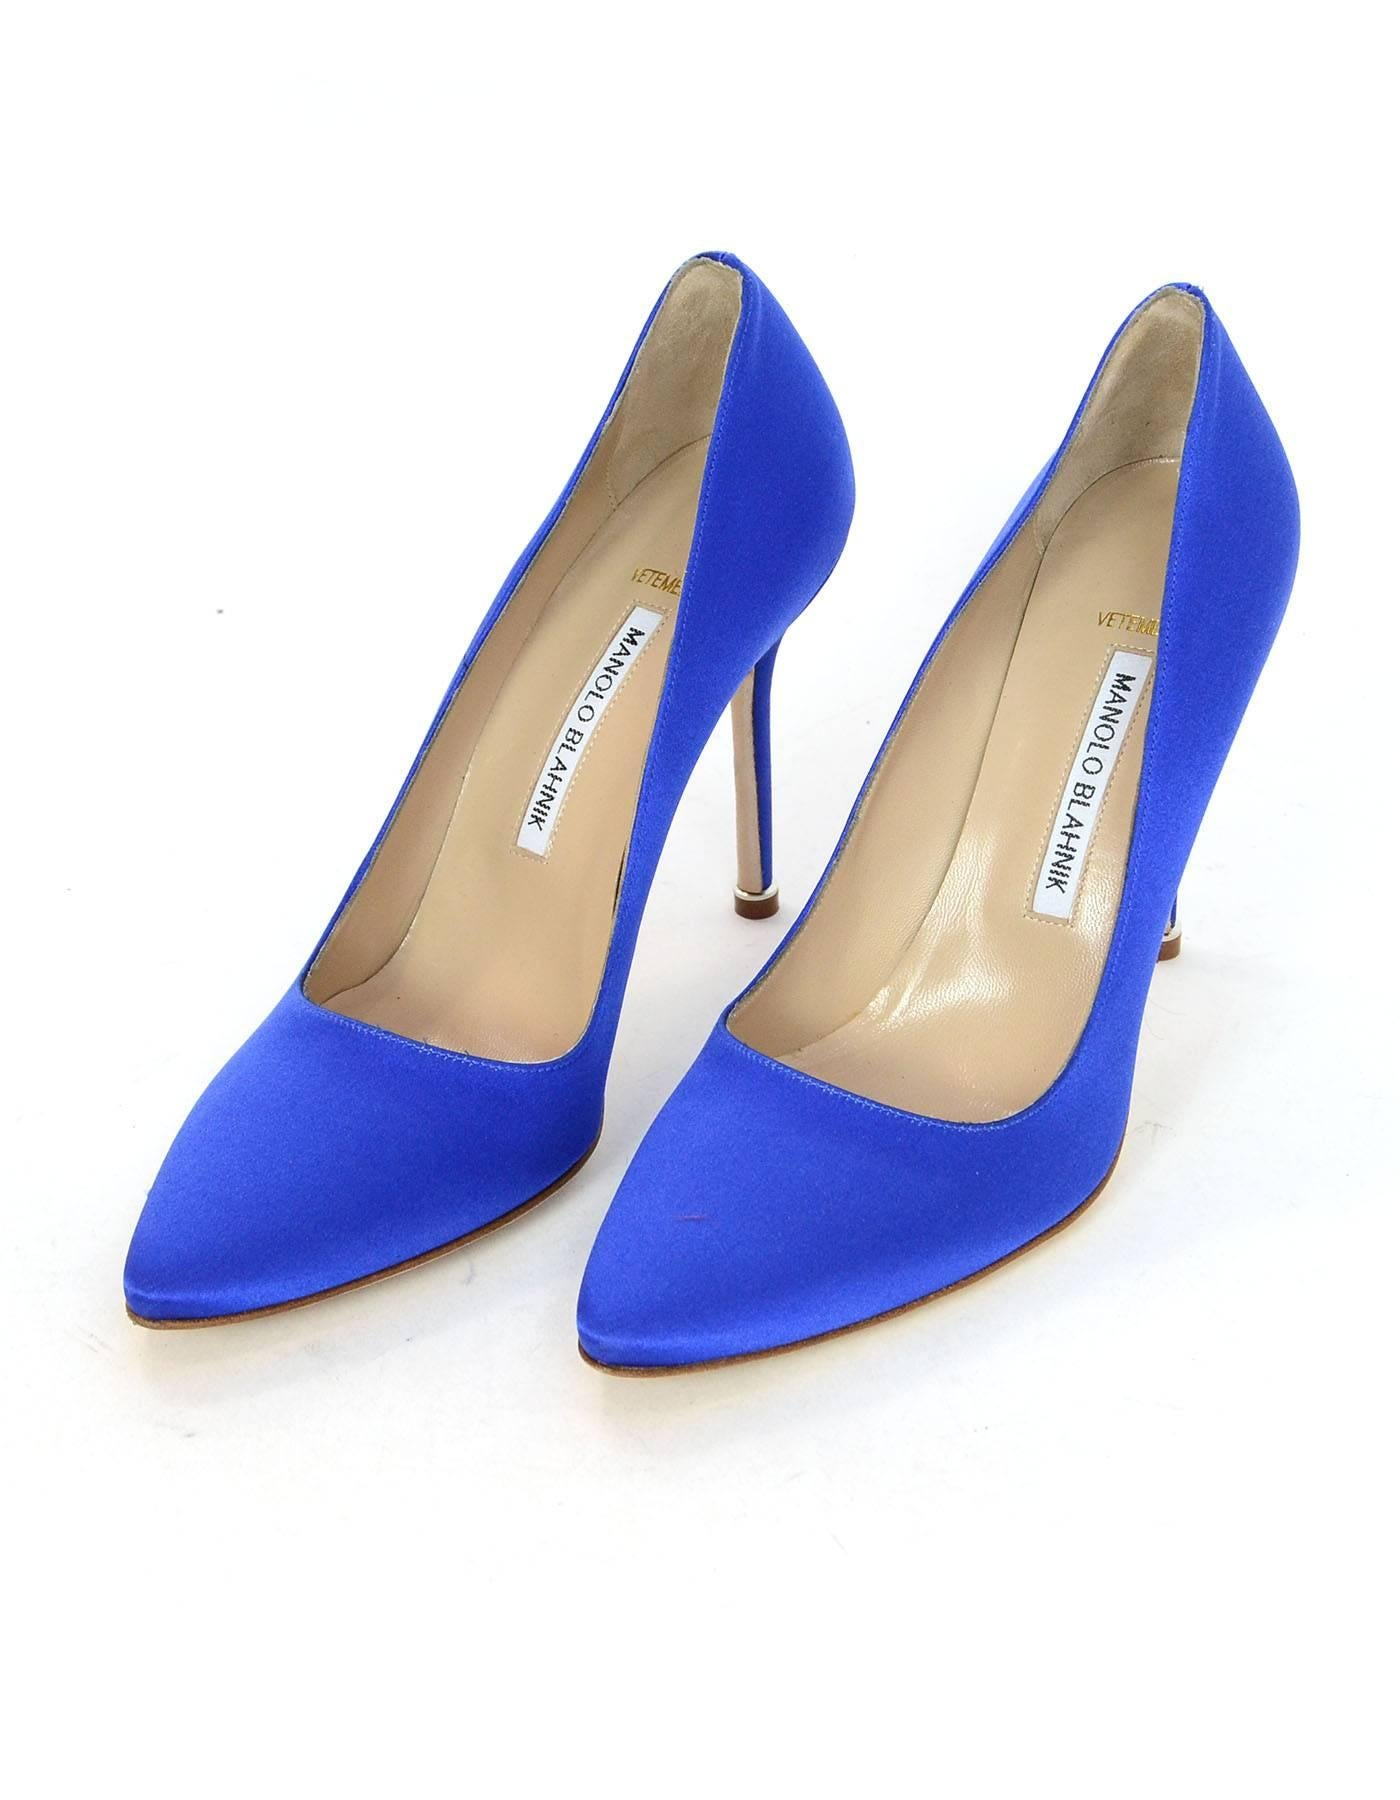 dfe92e3ef9d9b ... release date vetements x manolo blahnik blue satin signature pumps sz  39.5 new made in italy